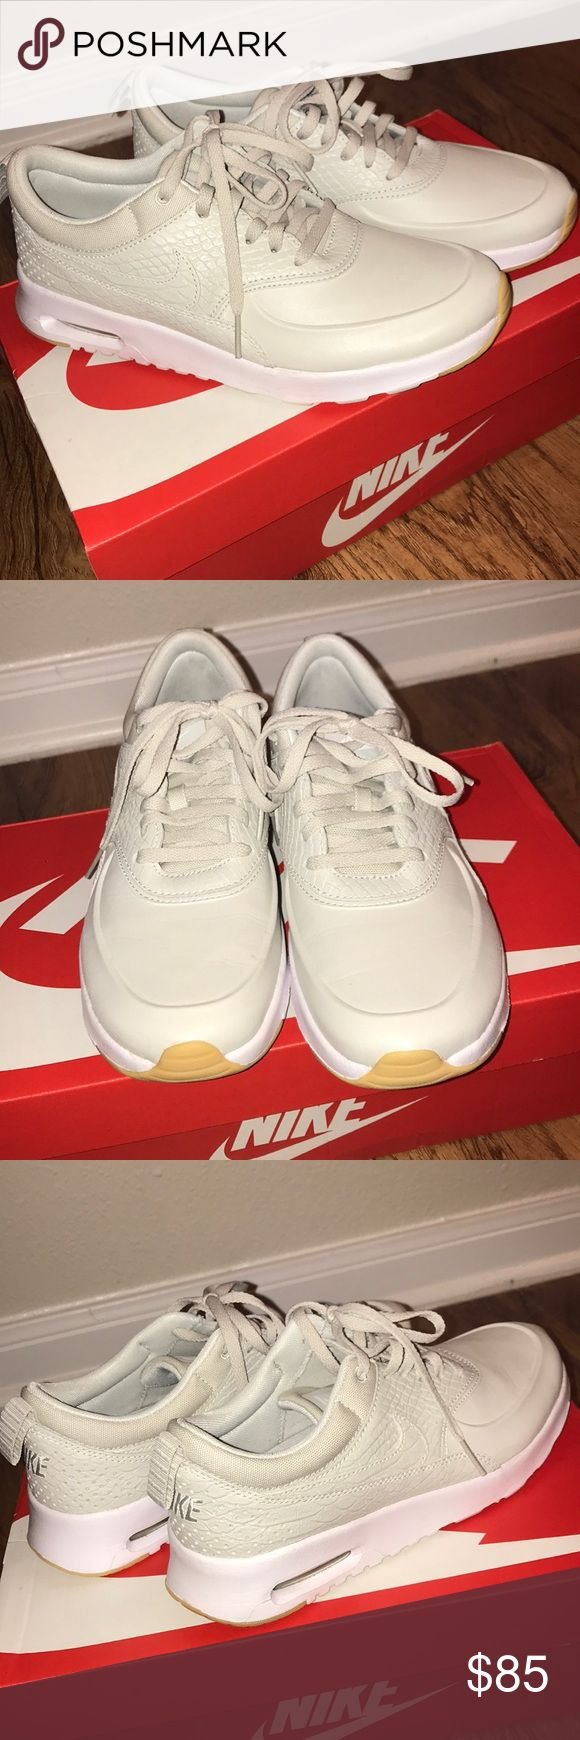 Nike Air Max Thea PRM Air Max Thea PRM size 7.5 worn once Nike Shoes Sneakers